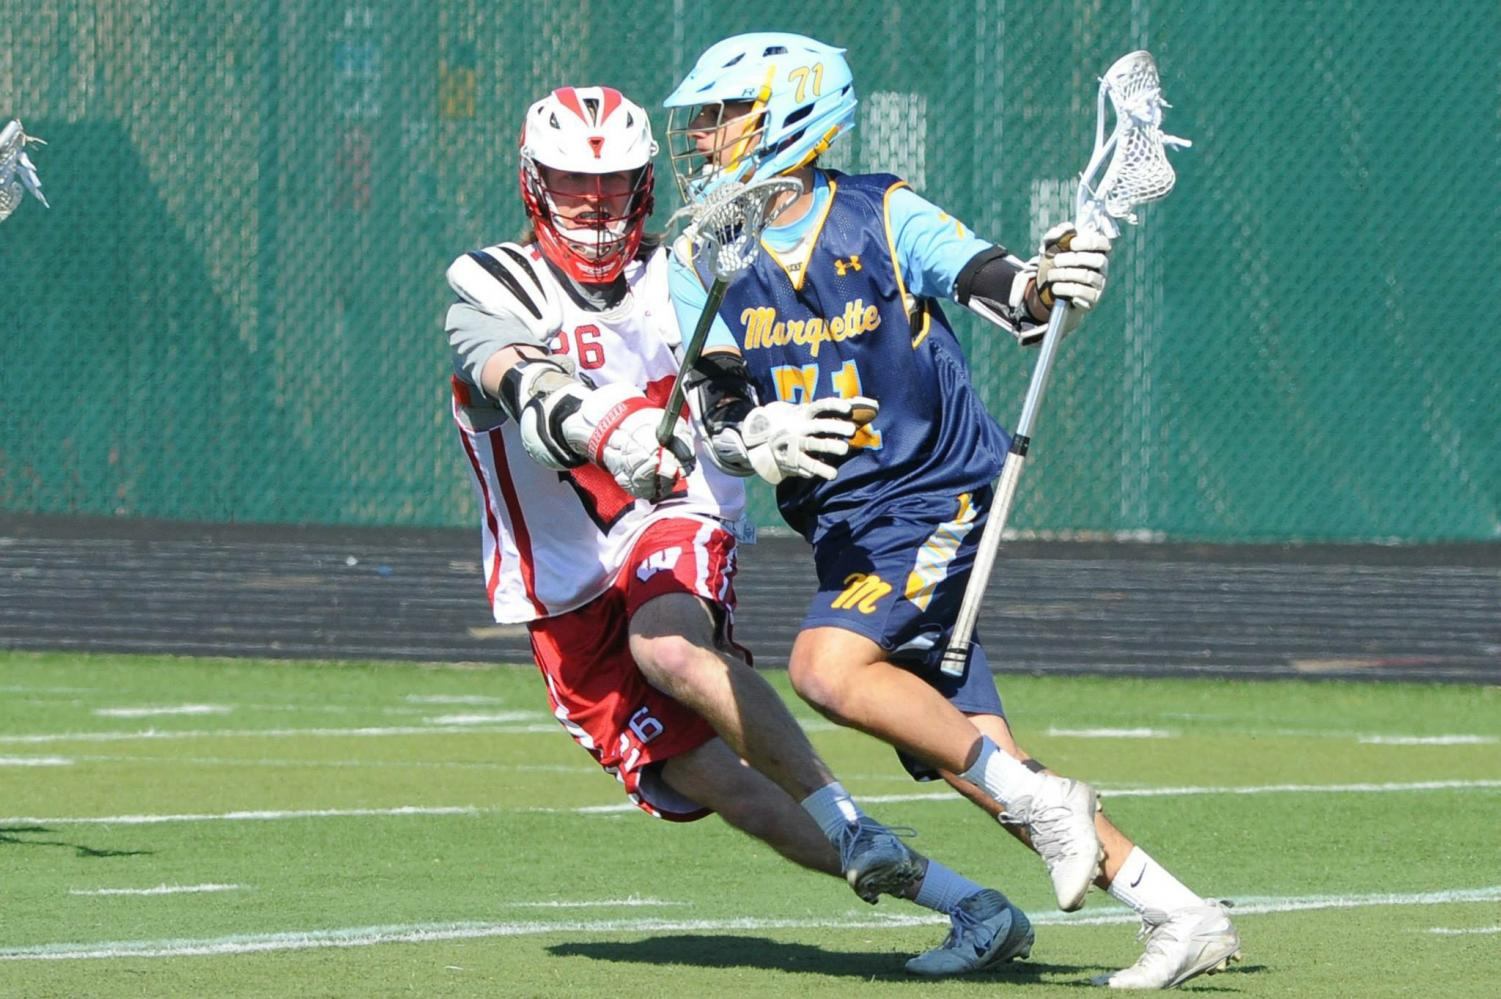 Club lacrosse player Niko Kakos will go to Israel this summer for the Federation of International Lacrosse (FIL) Championship. (Photo courtesy of Niko Kaikos.)